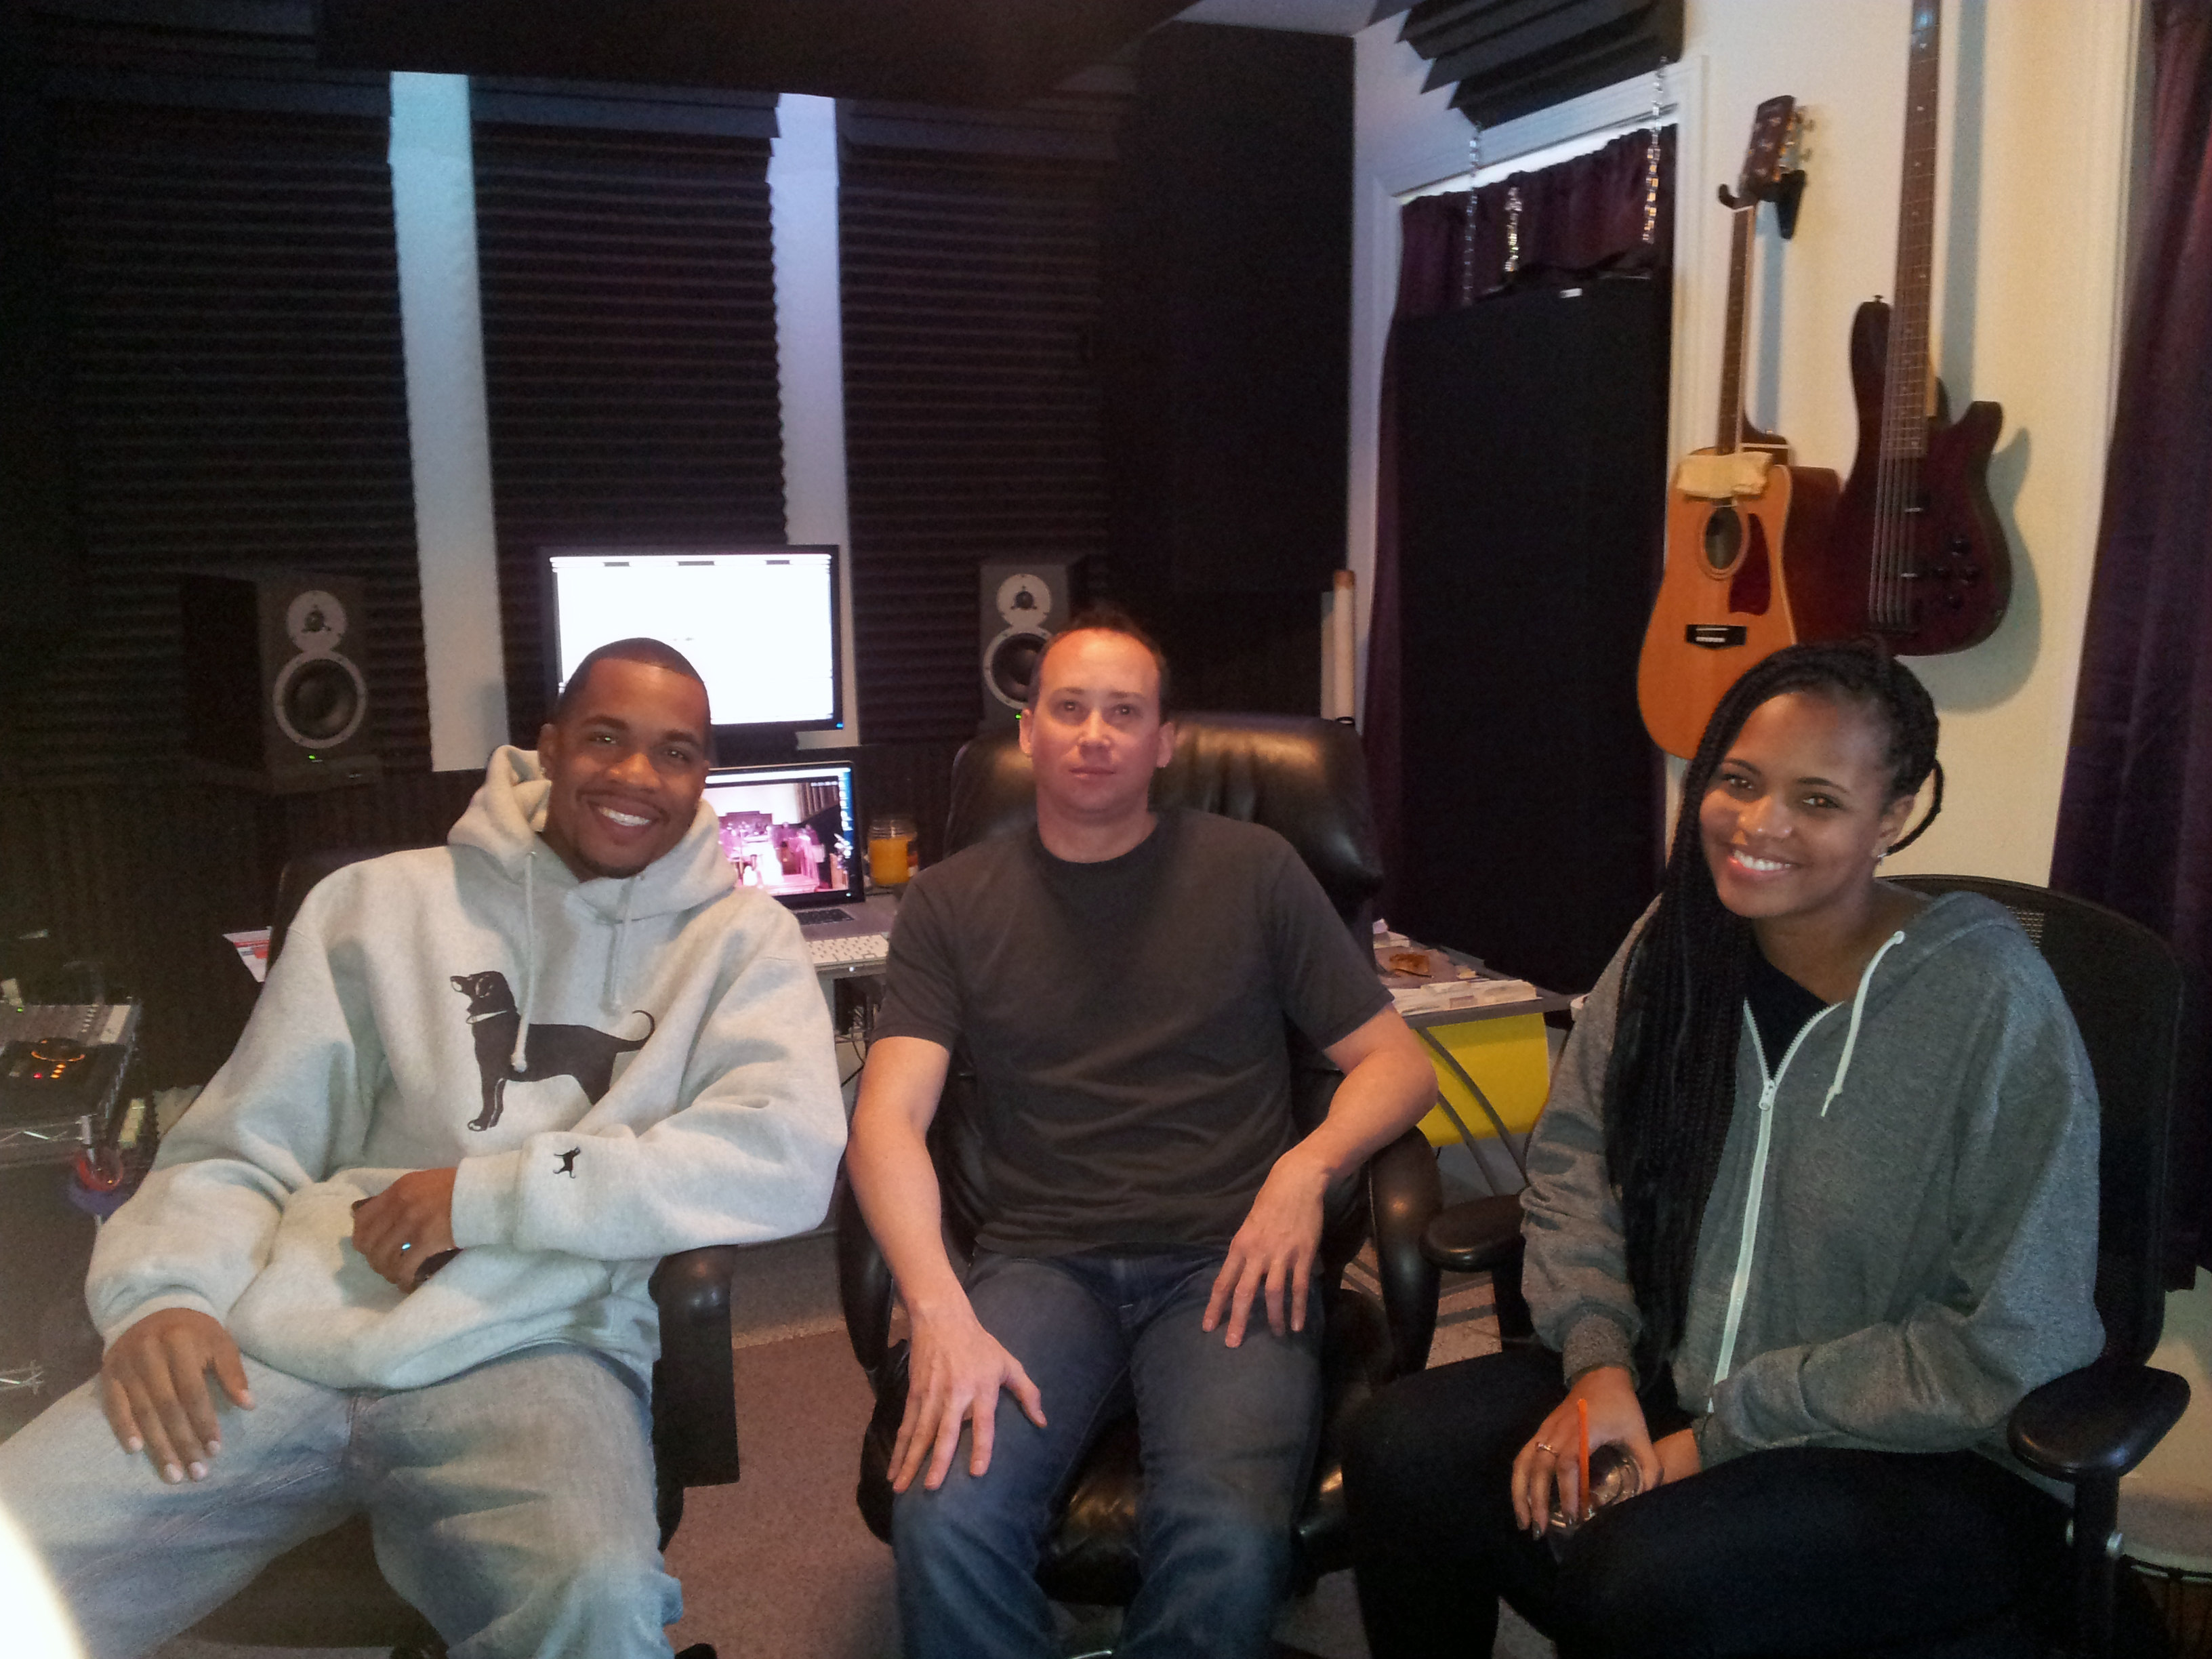 Jae Williams, John Eye, and Kayla in the control room at Beach House Studios